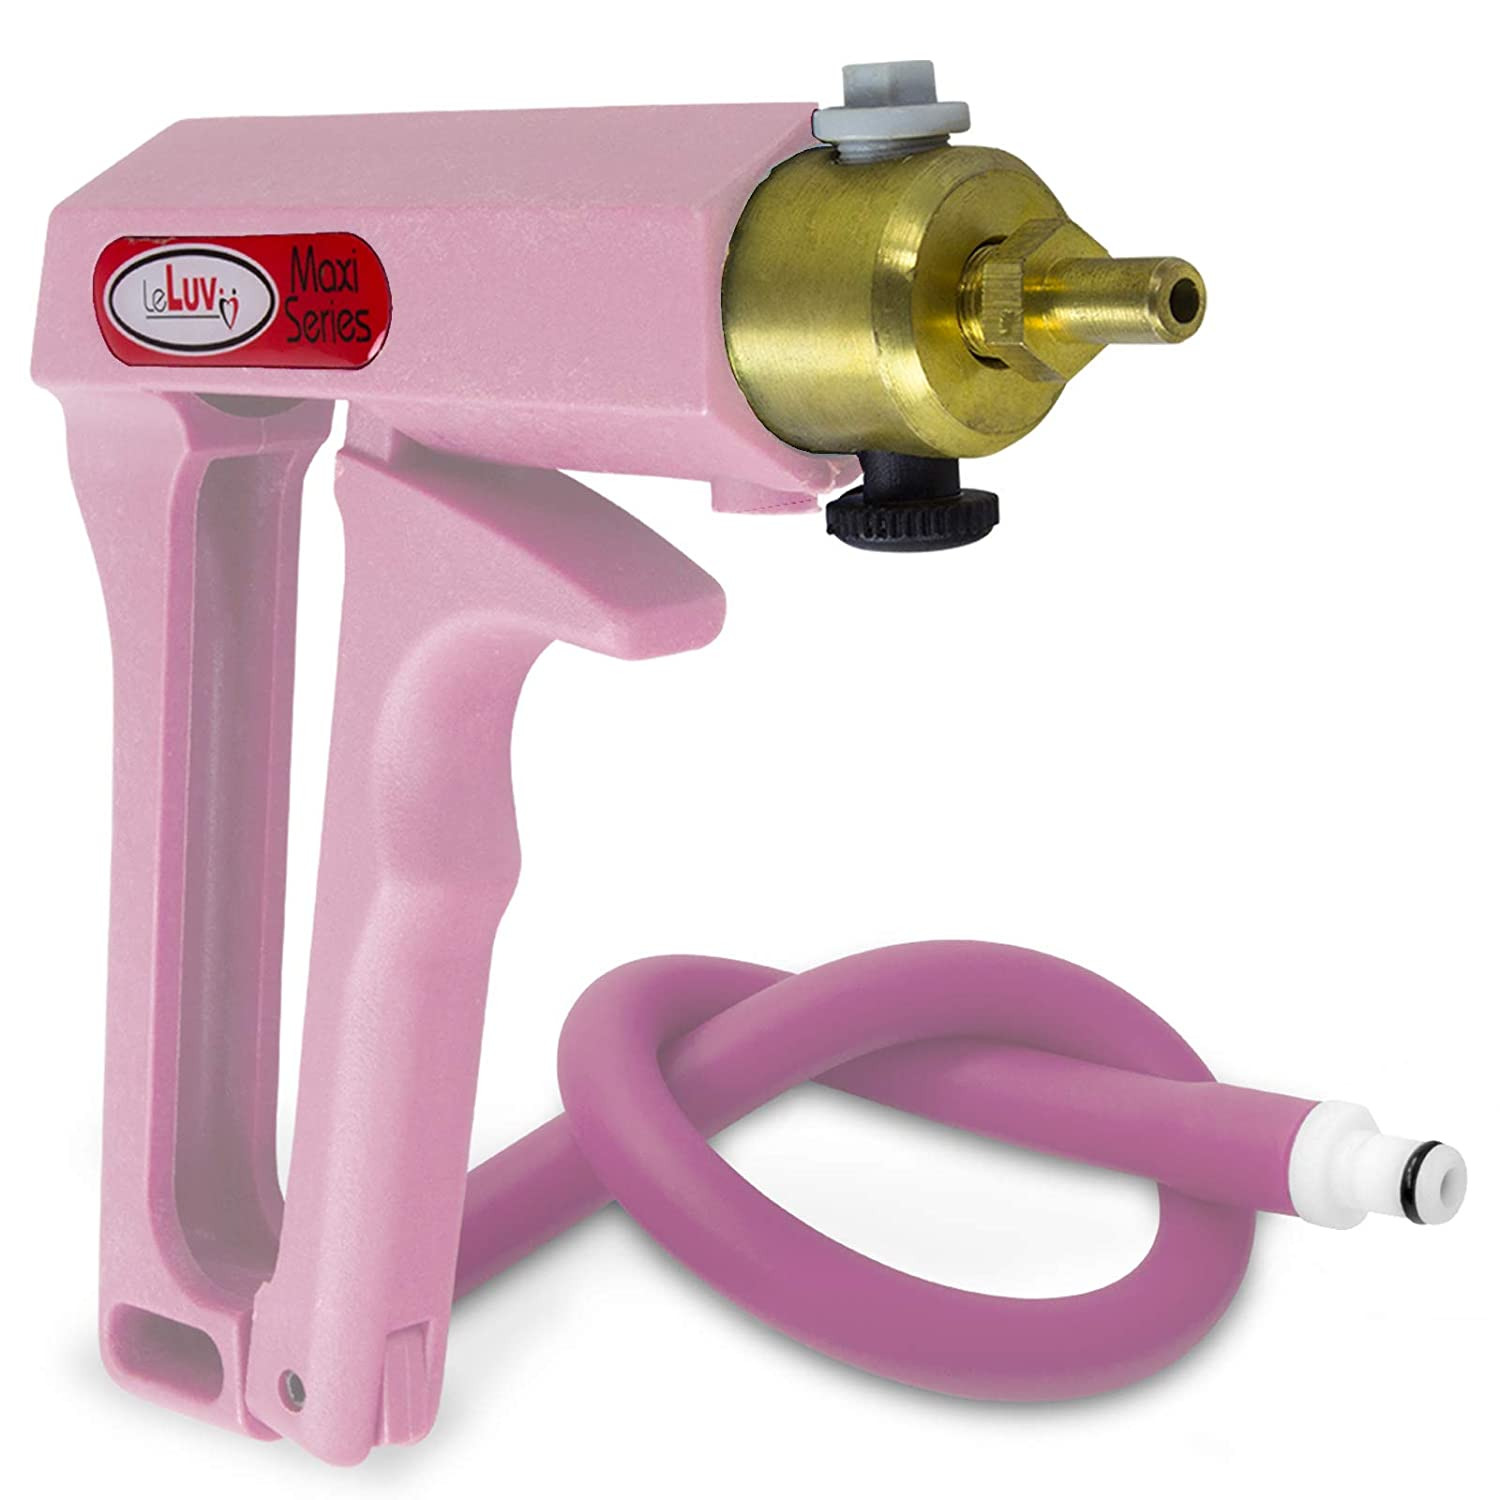 LeLuv Vacuum Pump Purple Maxi Ergonomic Handle with Release Valve with Matching Premium Silicone Hose and Fitting